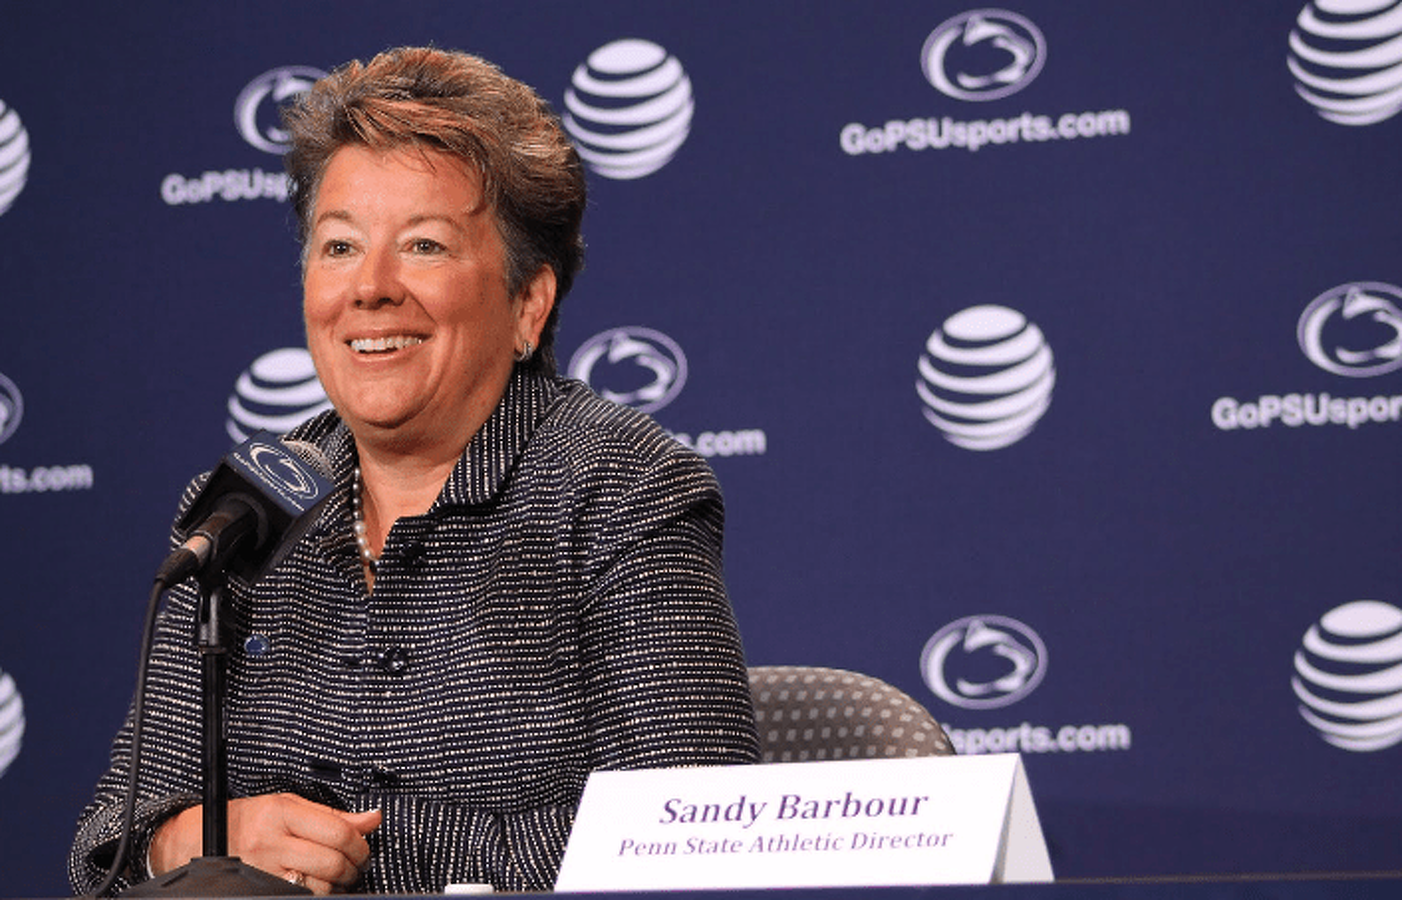 Penn State Athletics` Plans for Change Are...